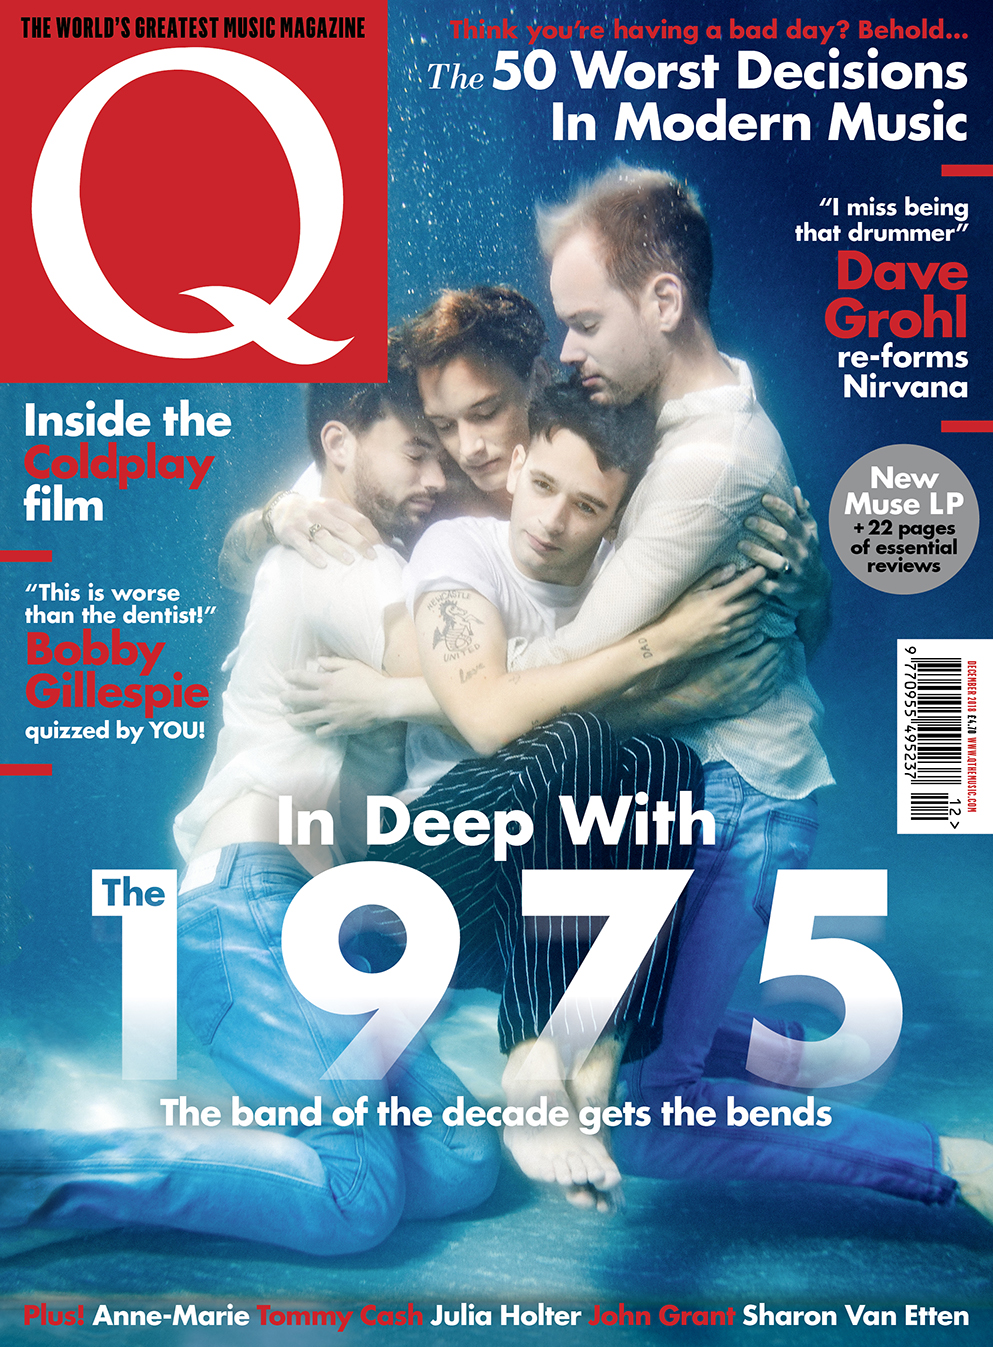 The 1975 Are On The Cover Of The New Issue!